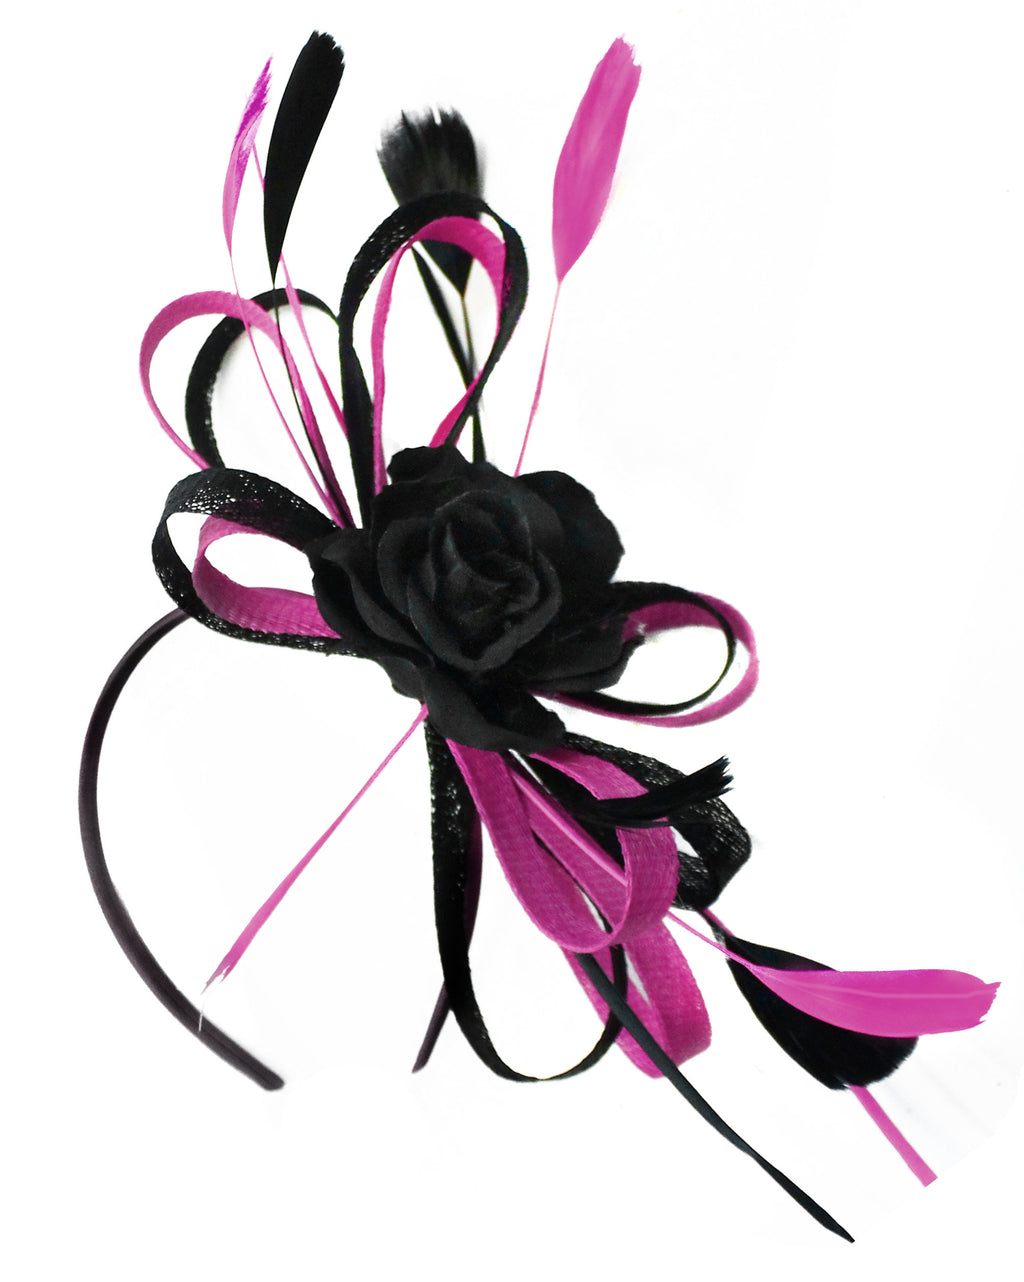 Caprilite Sinamay Rose Black and Plum Fascinator on Headband Alice Band UK Wedding Ascot Races Loop